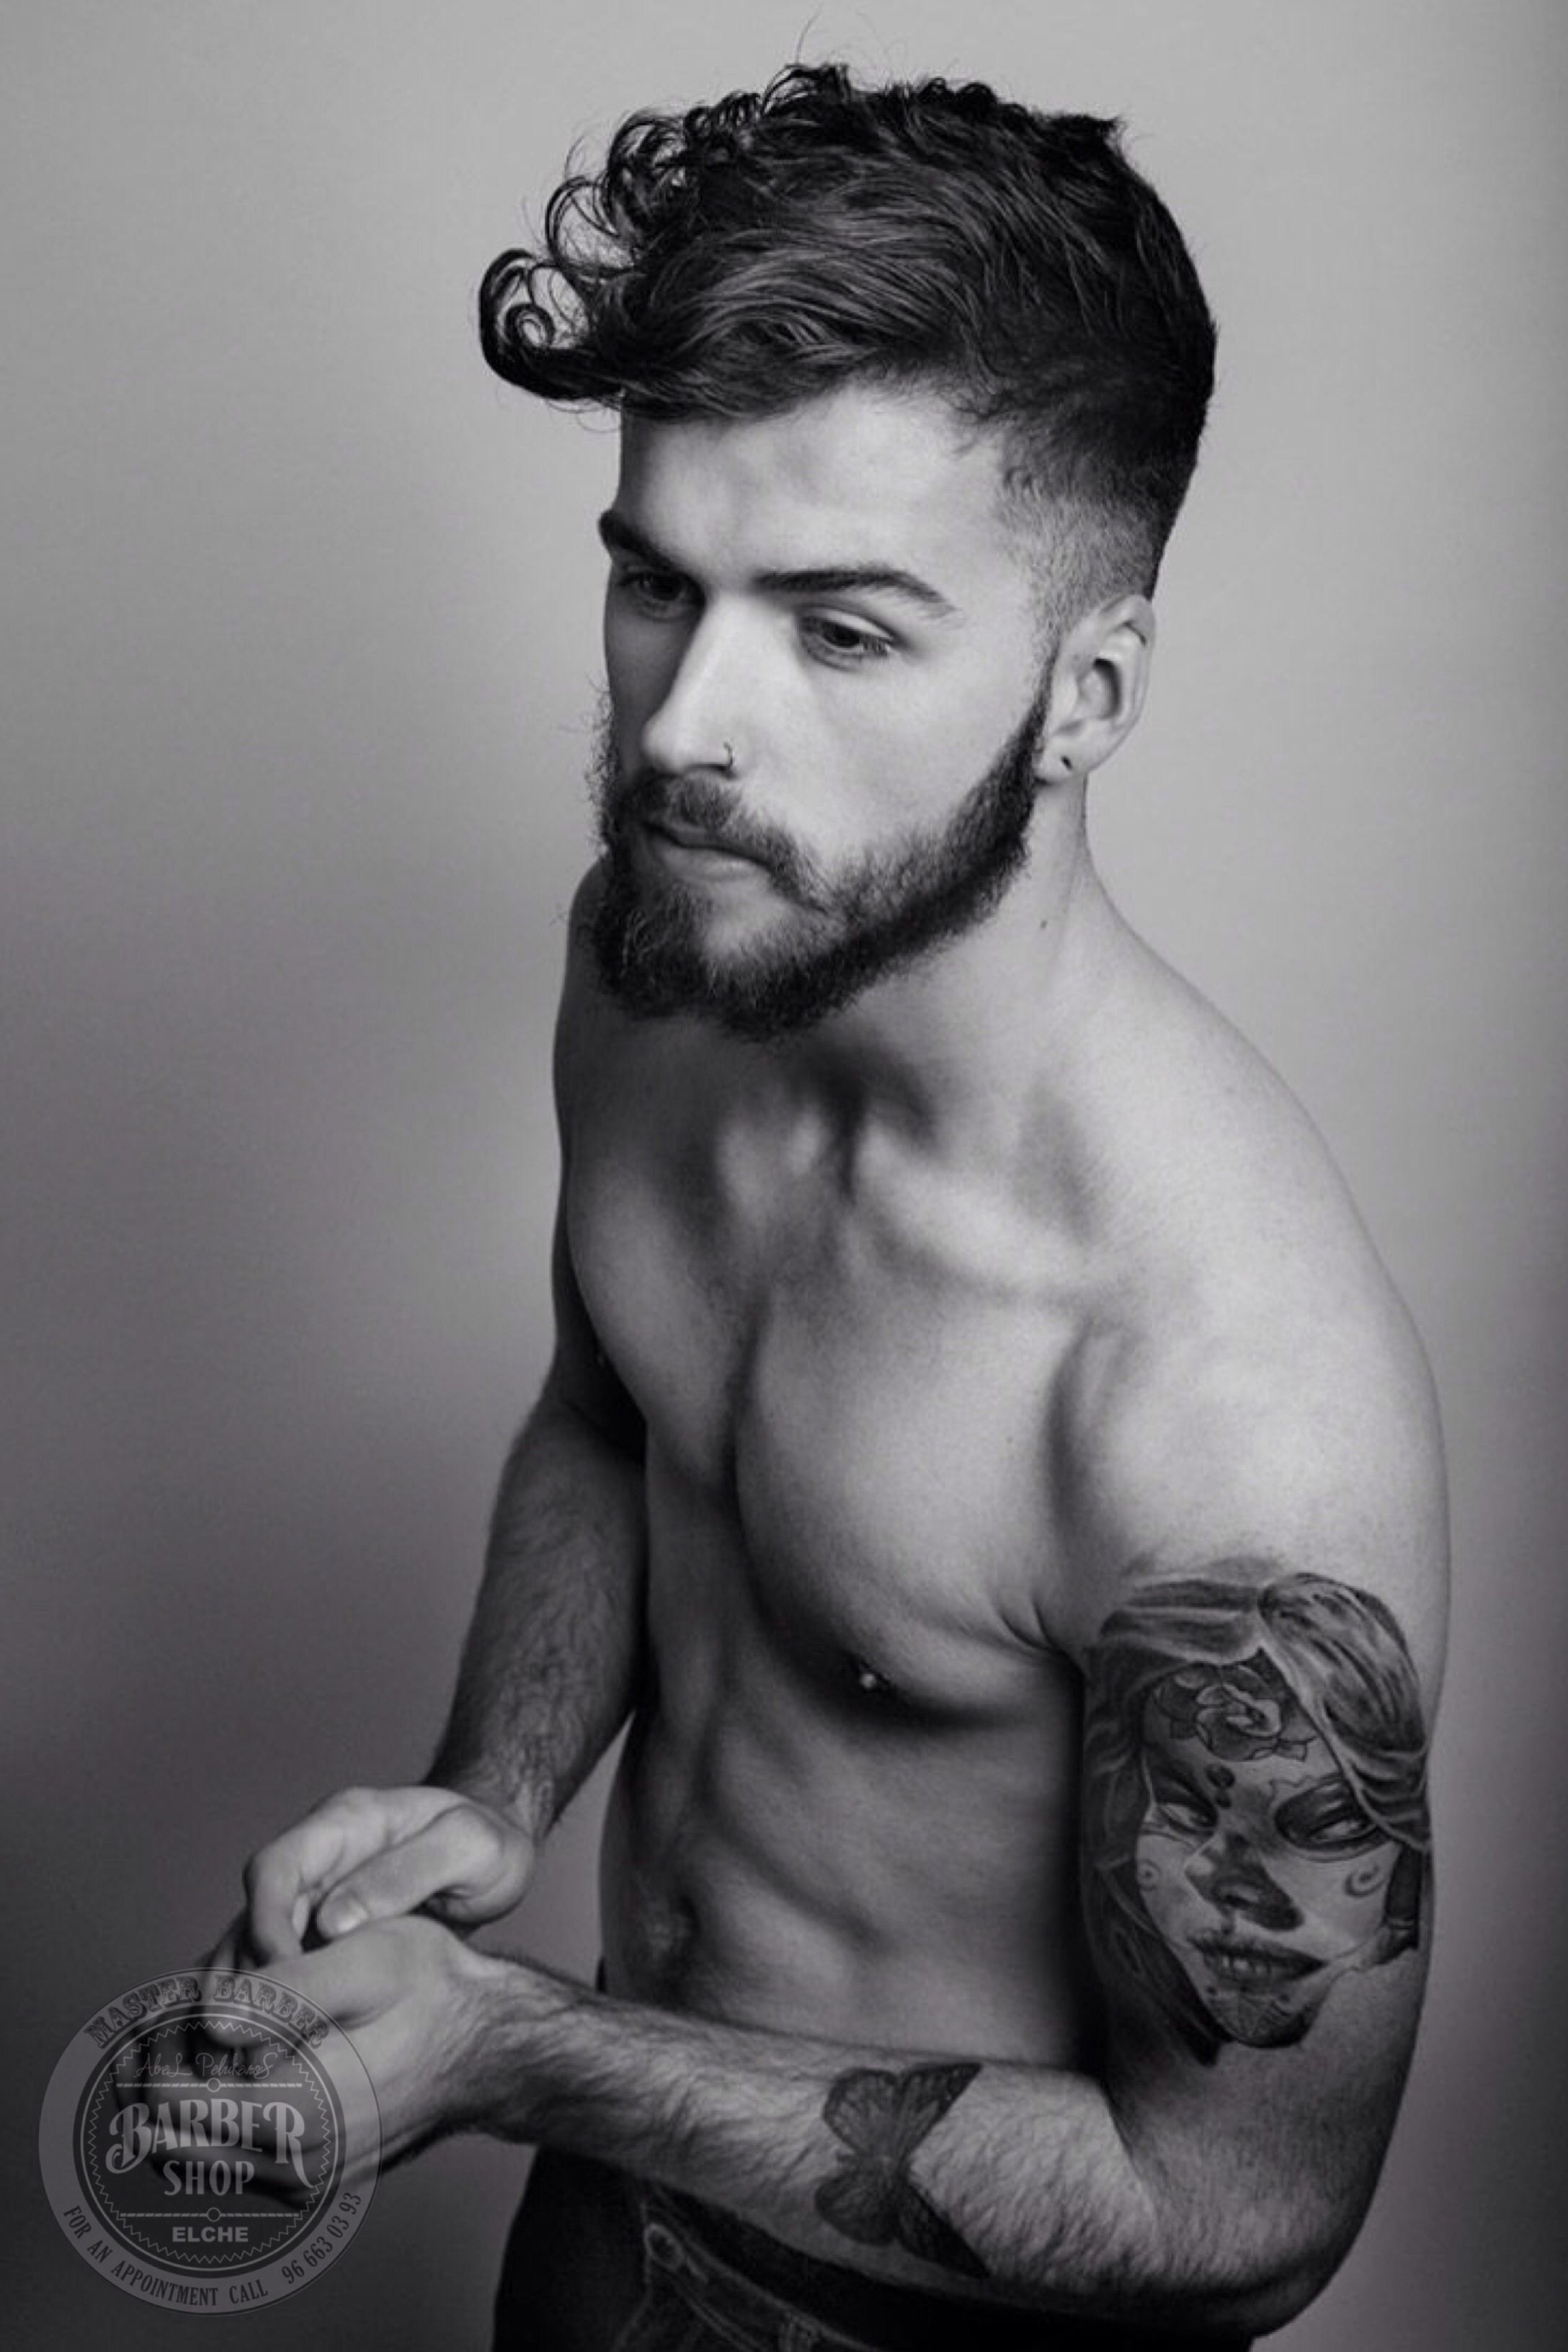 Boy haircuts drawing nice u clean low cut line with defined texture through the long top